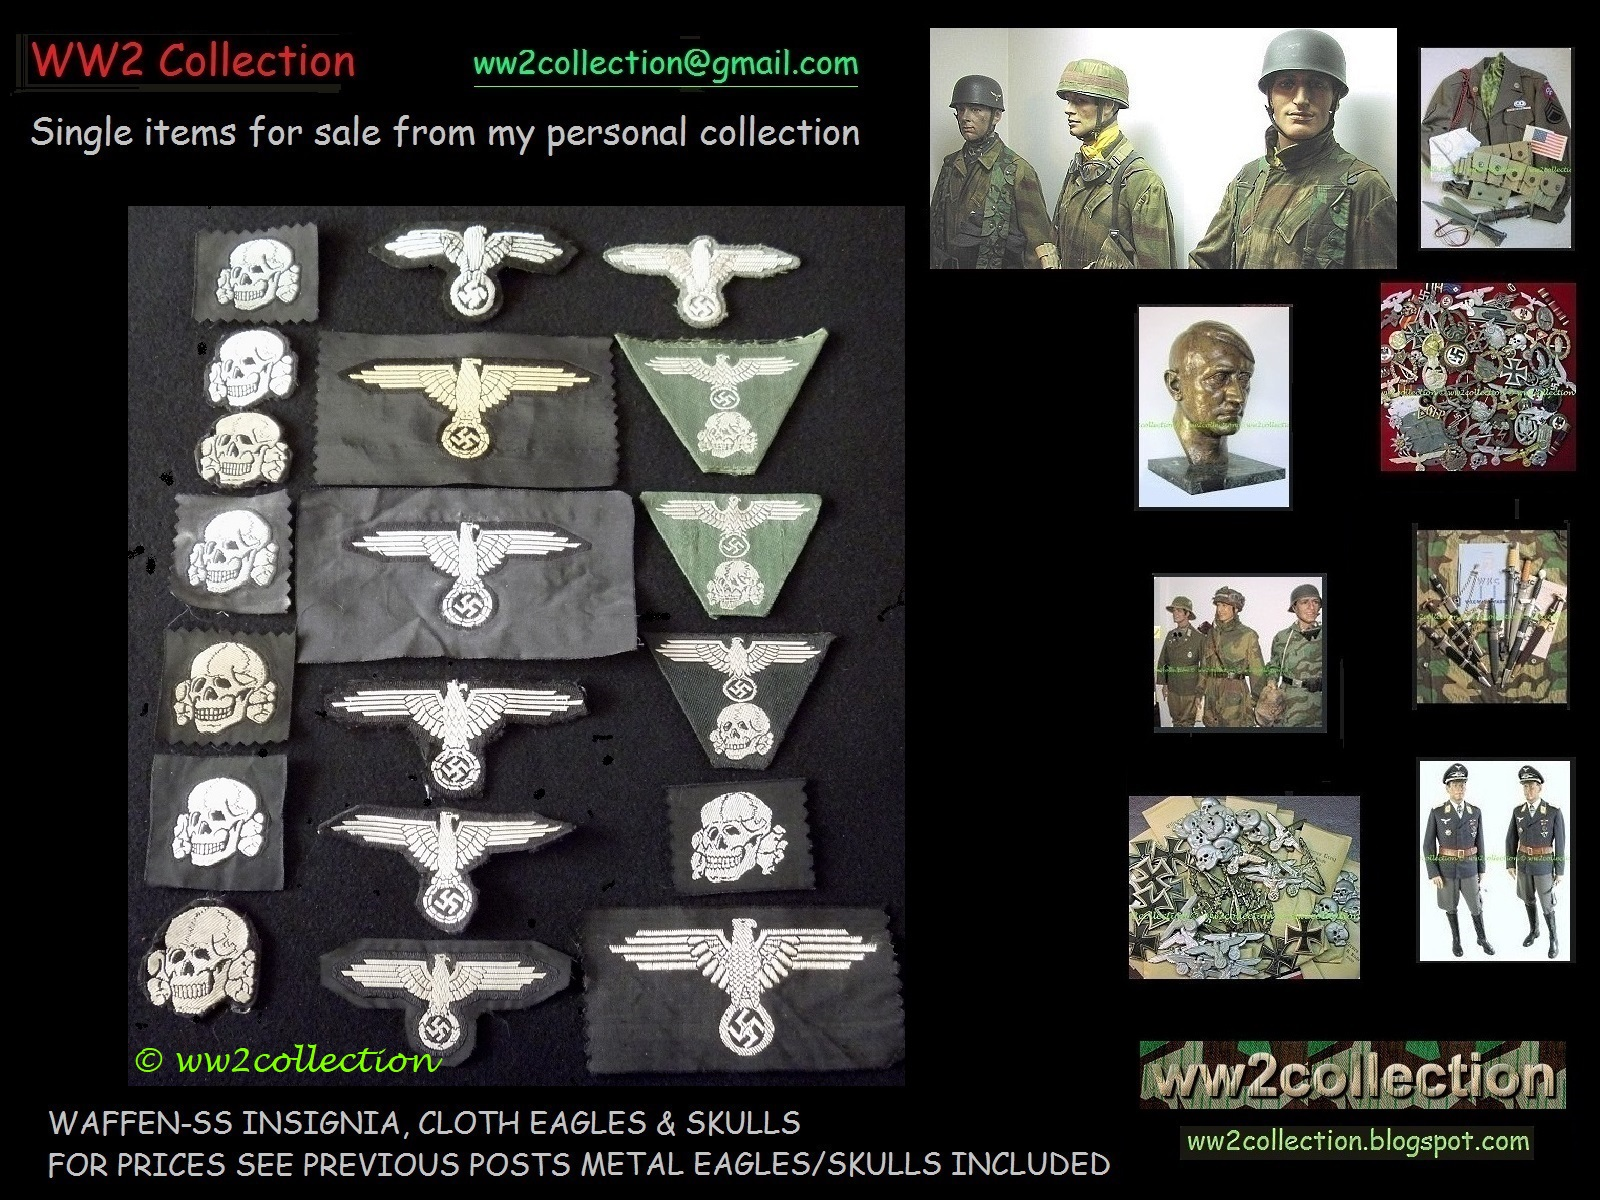 WW2 Collection Price List of my Private Collection Liquidation: SS